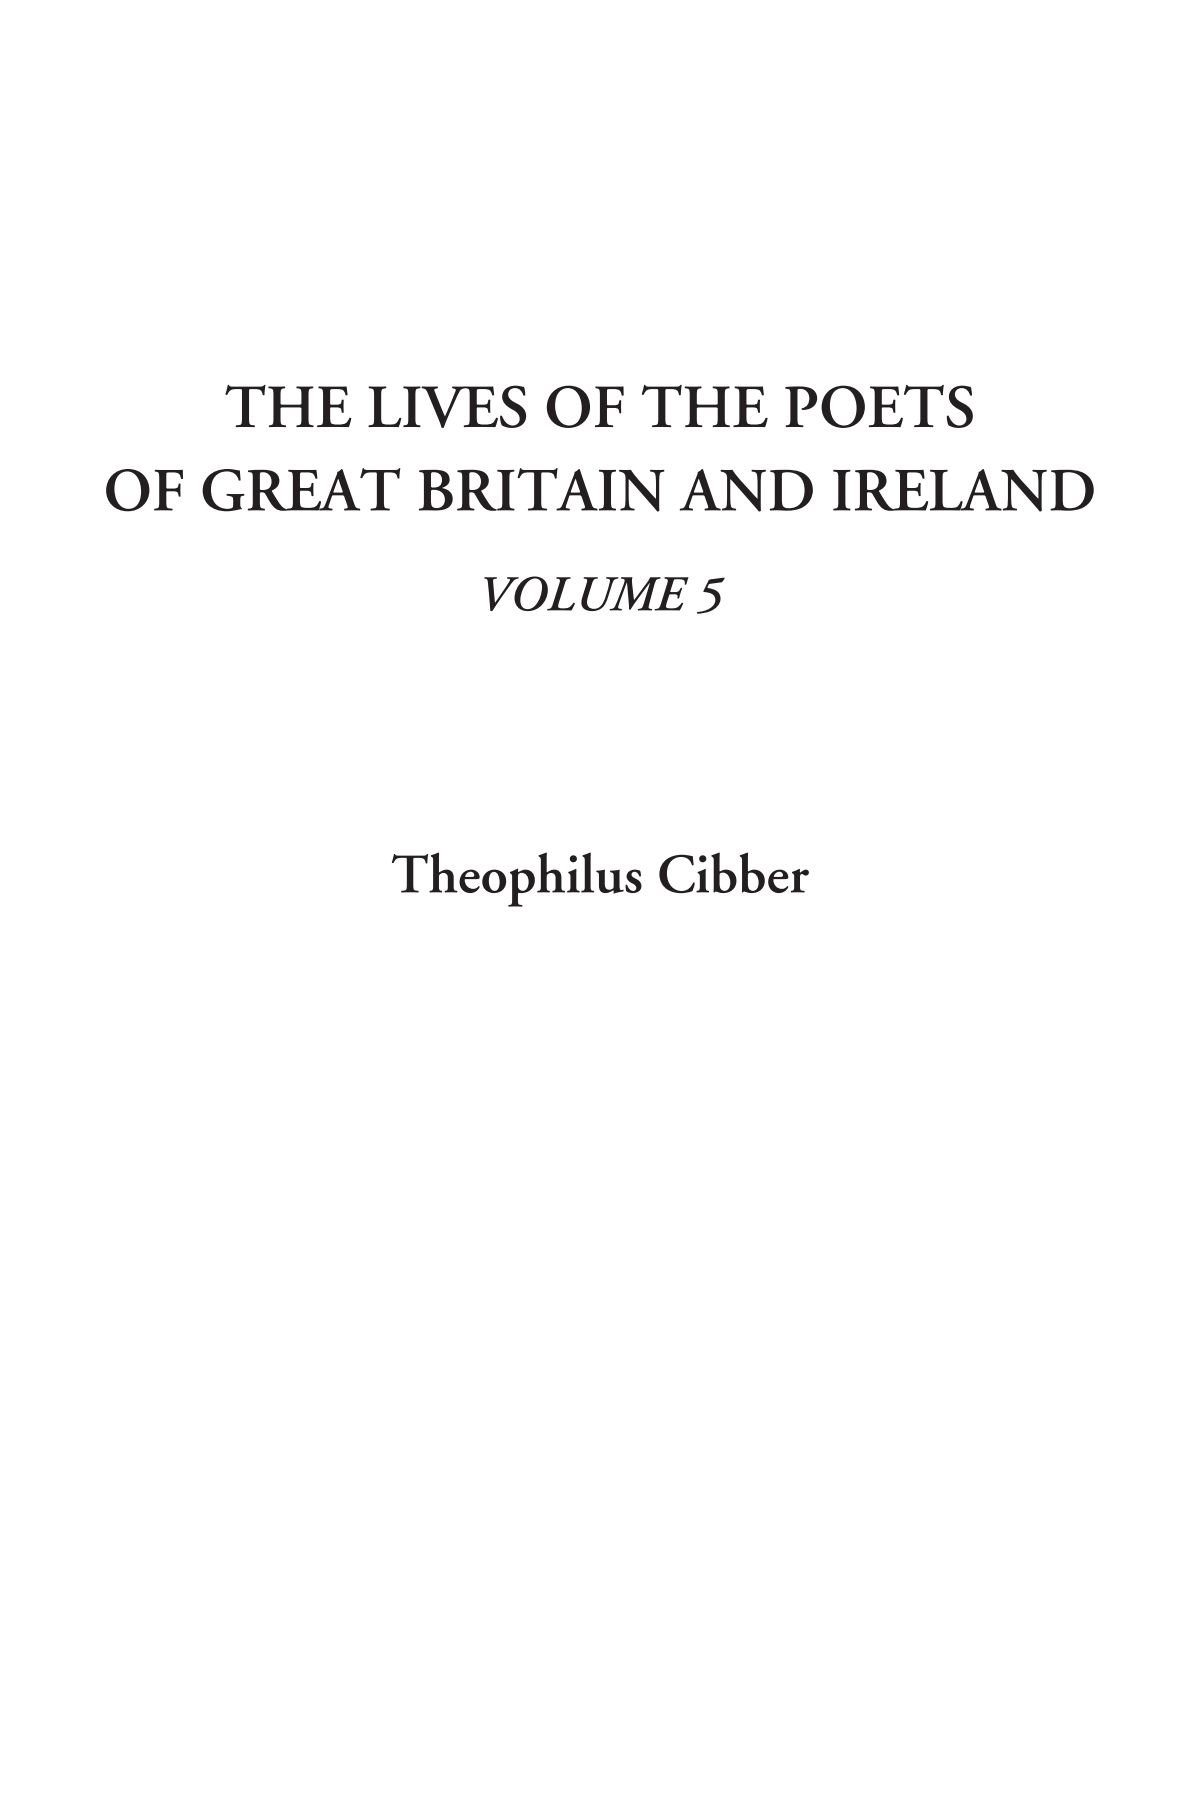 The Lives of the Poets of Great Britain and Ireland, Volume 5 PDF